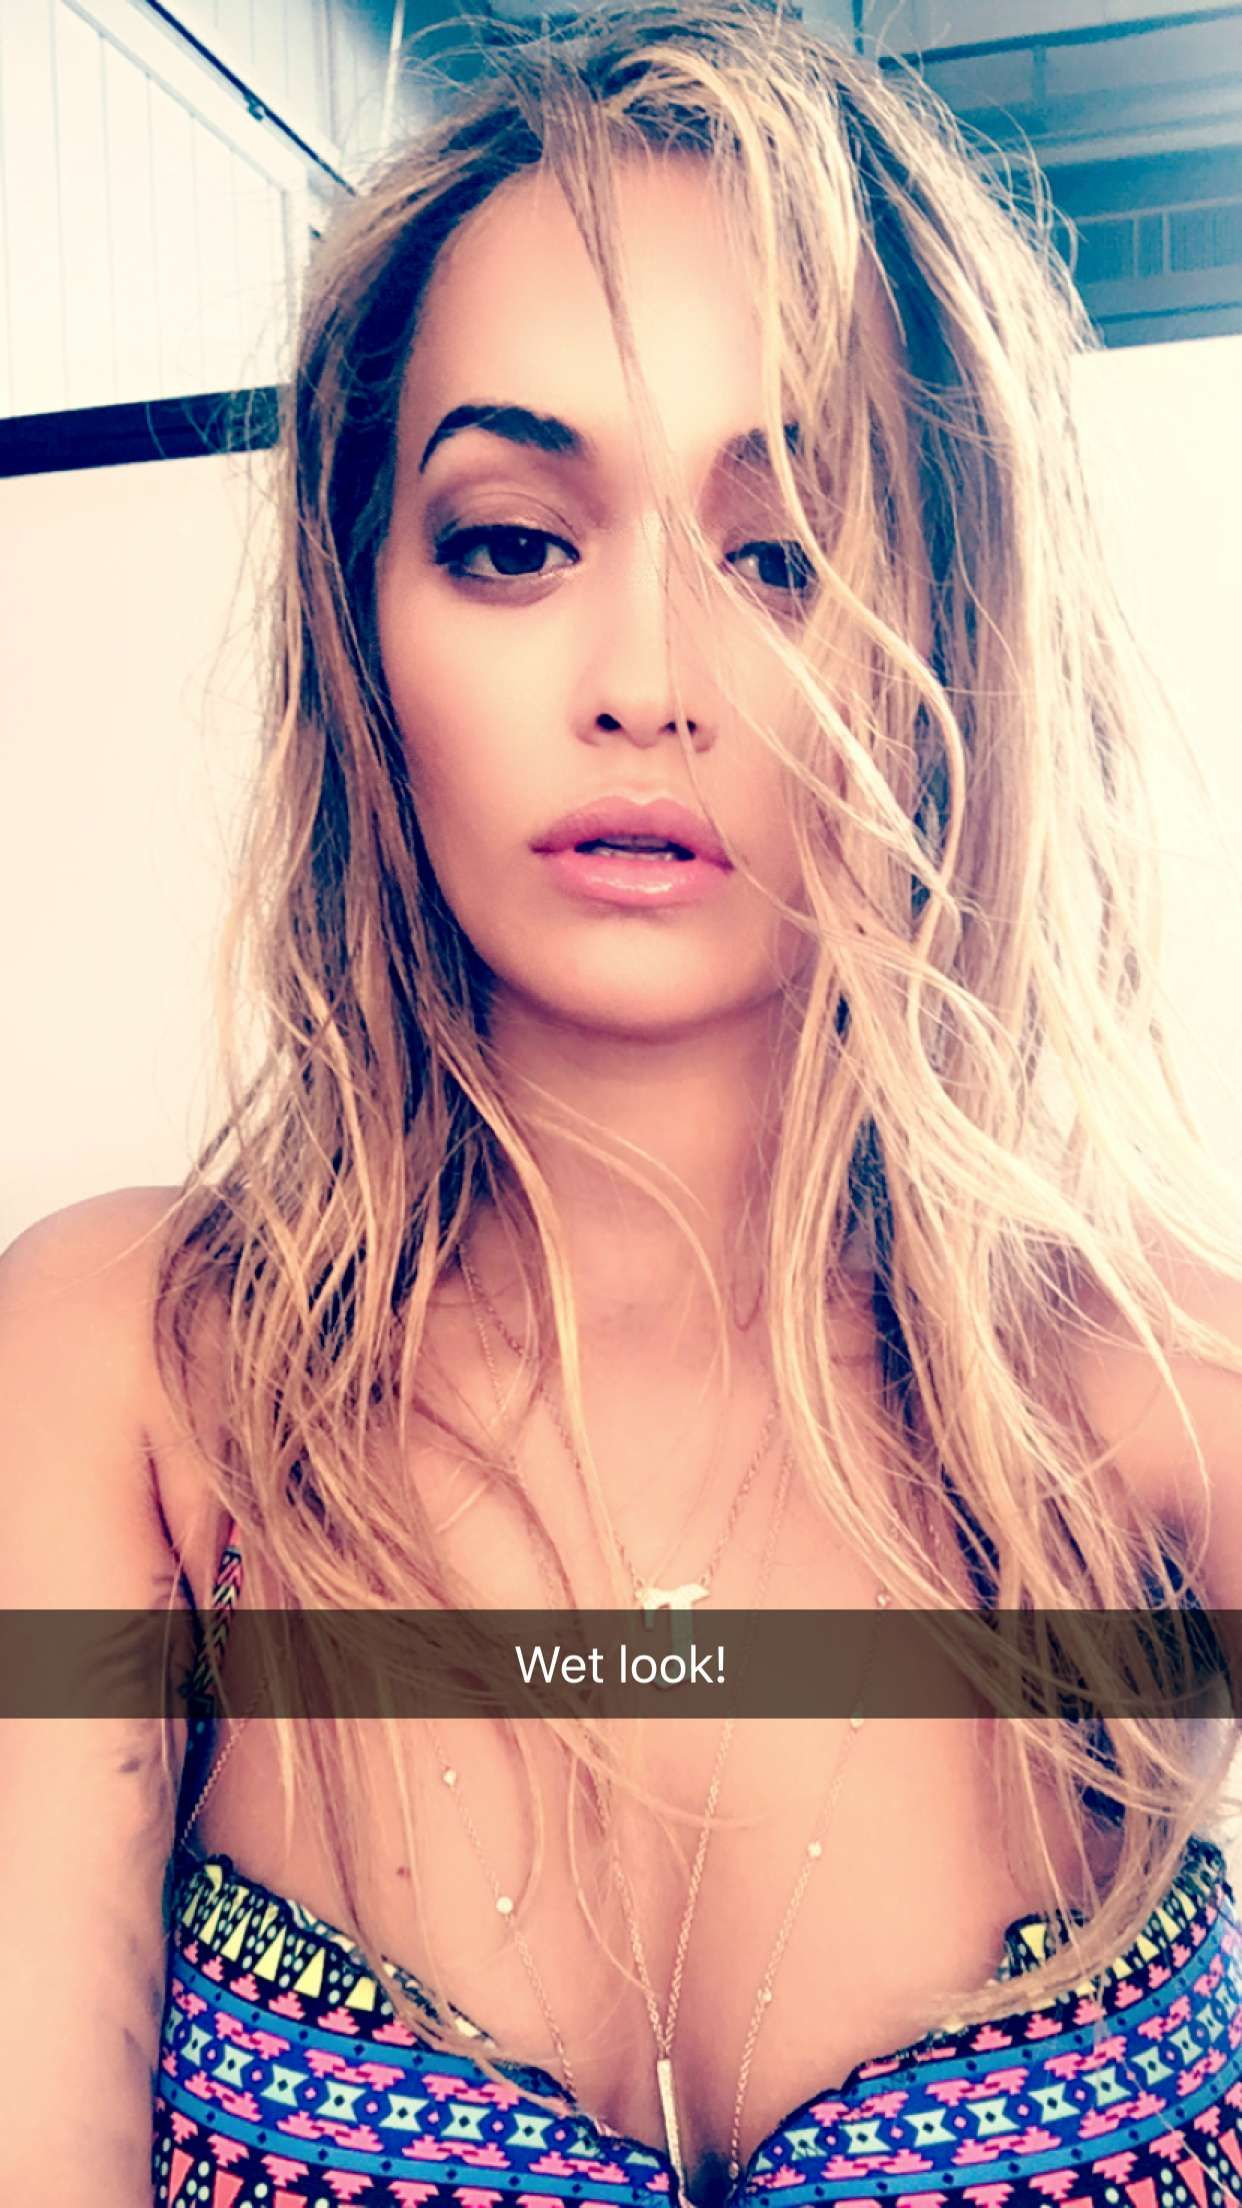 Porn Rita Ora nudes (48 photo), Topless, Leaked, Instagram, cleavage 2020